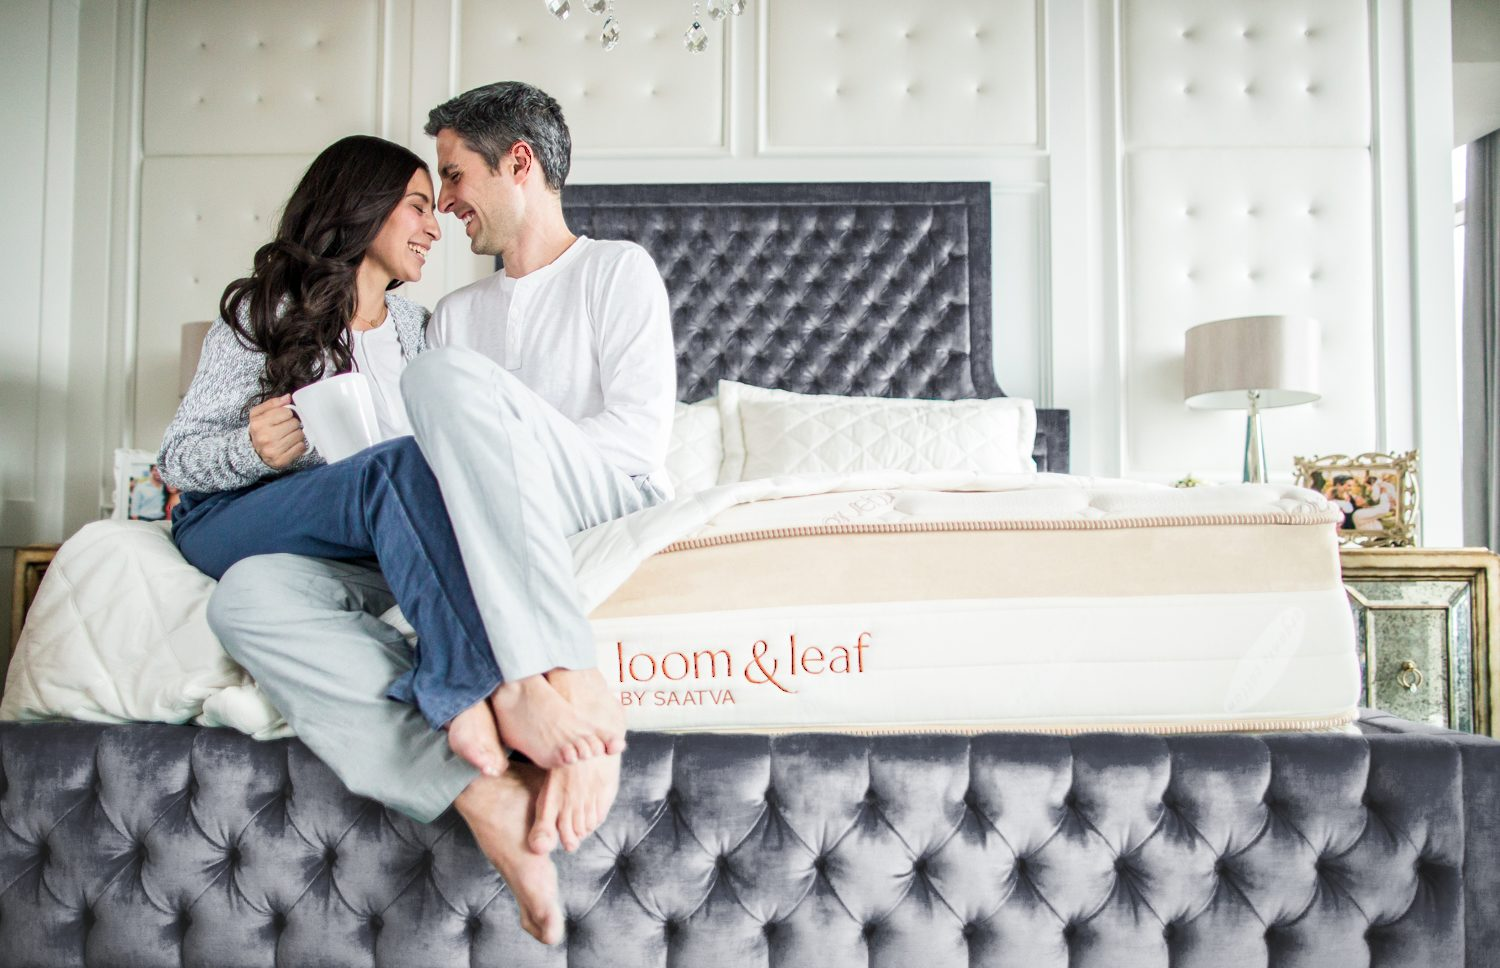 Couple on a Loom & Leaf mattress